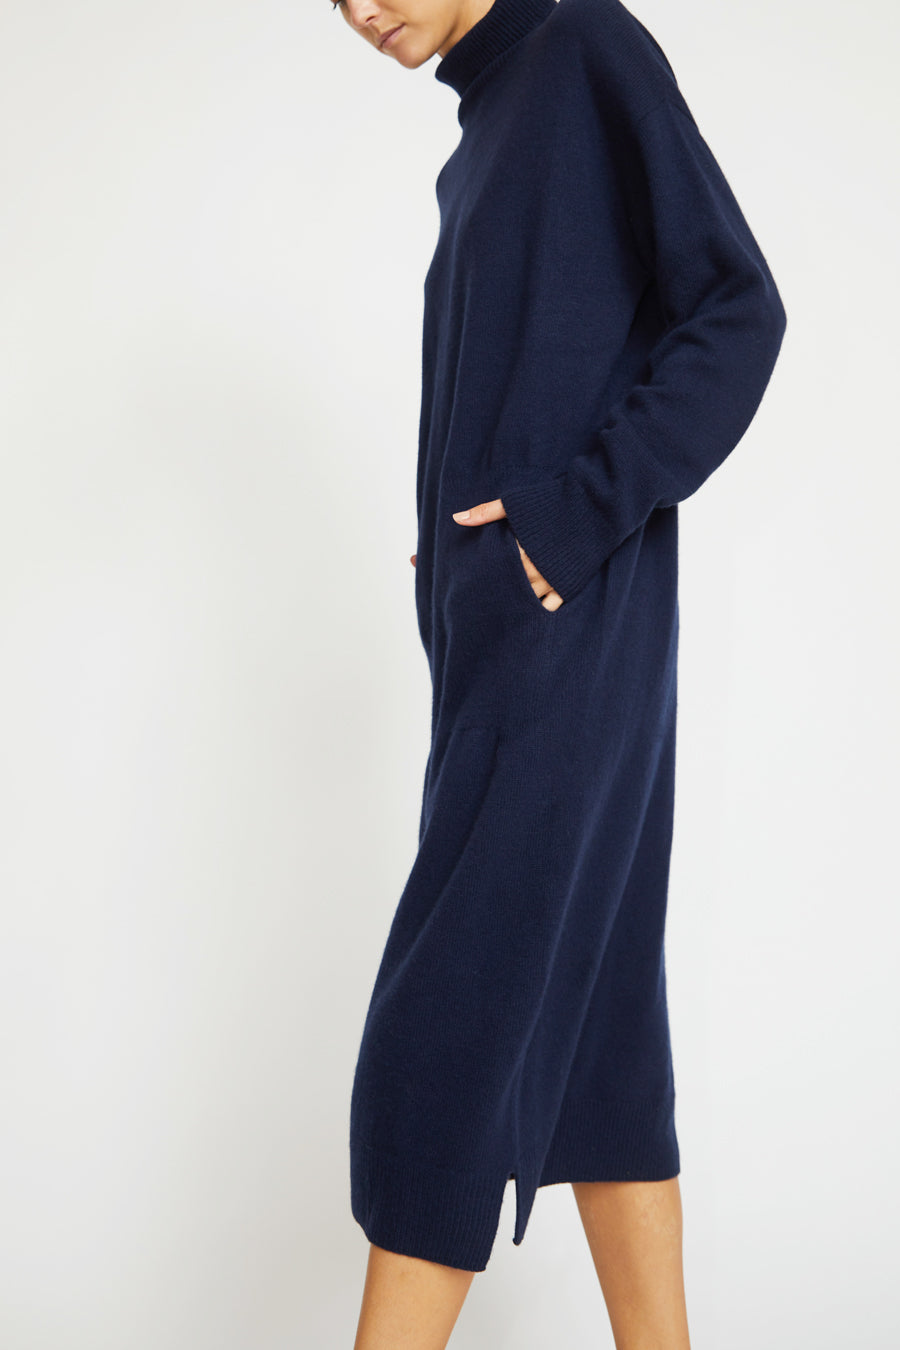 Mijeong Park Wholegarment Knit Dress in Navy